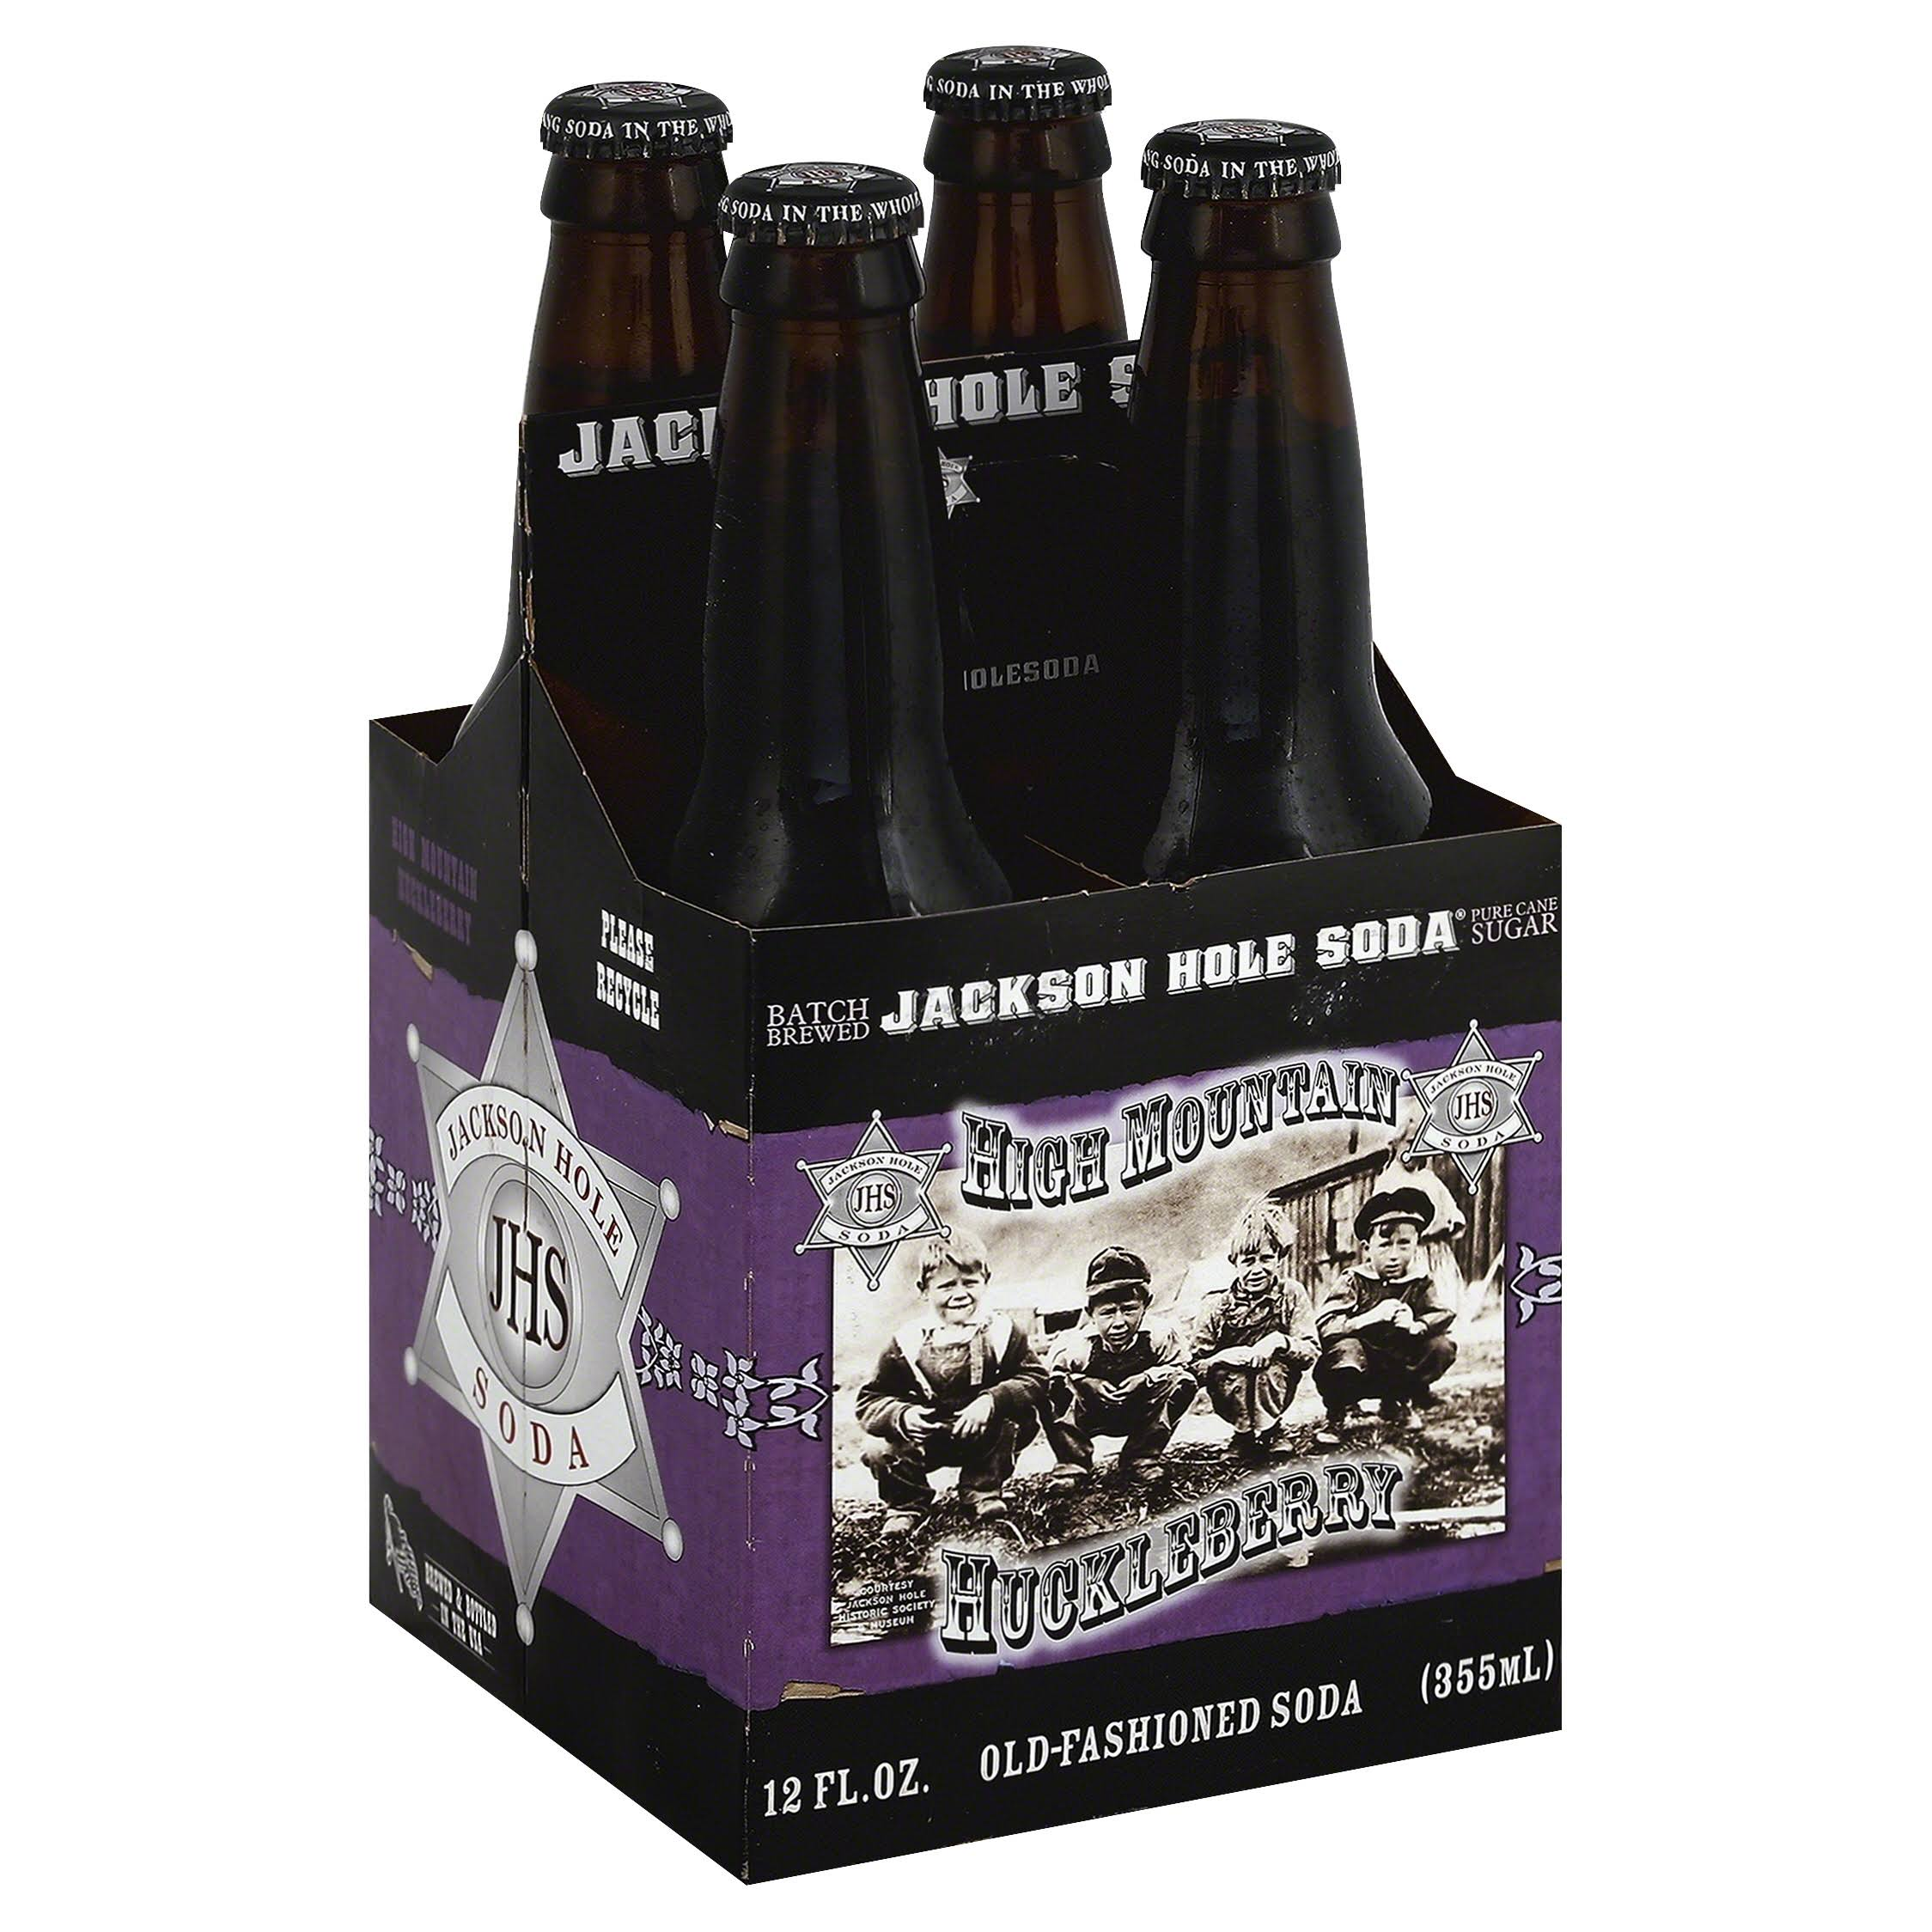 Jackson Hole Soda Soda, Old-Fashioned, High Mountain Huckleberry - 4 pack, 12 fl oz bottles